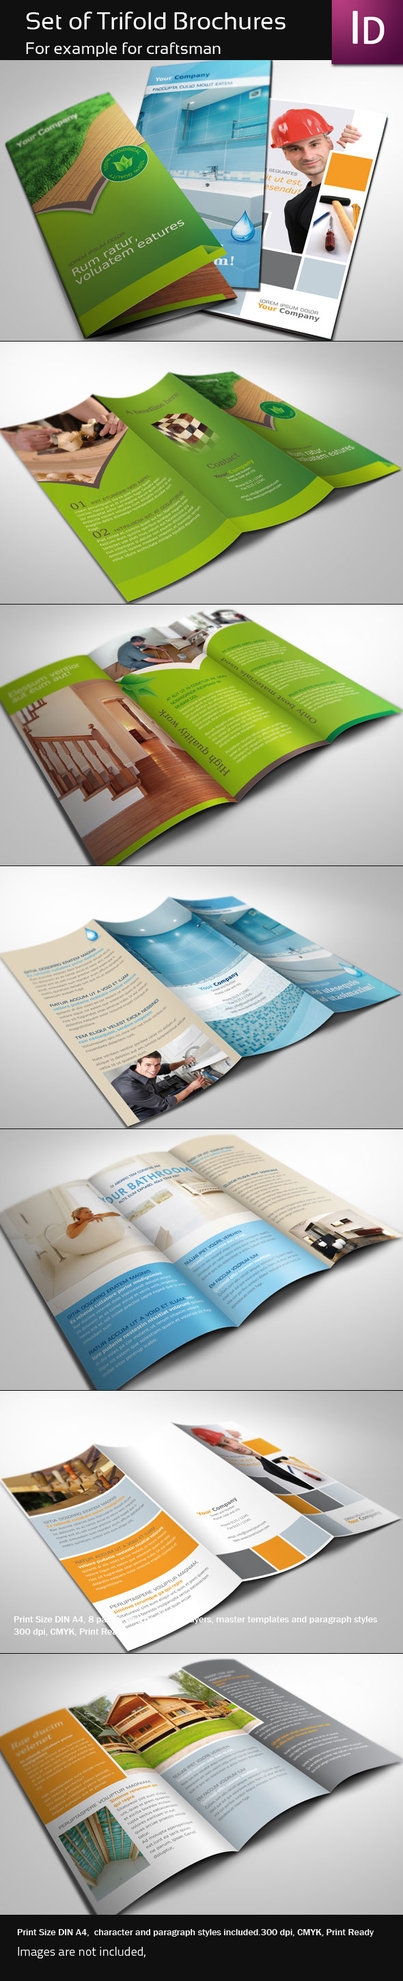 24_Trifold Brochures